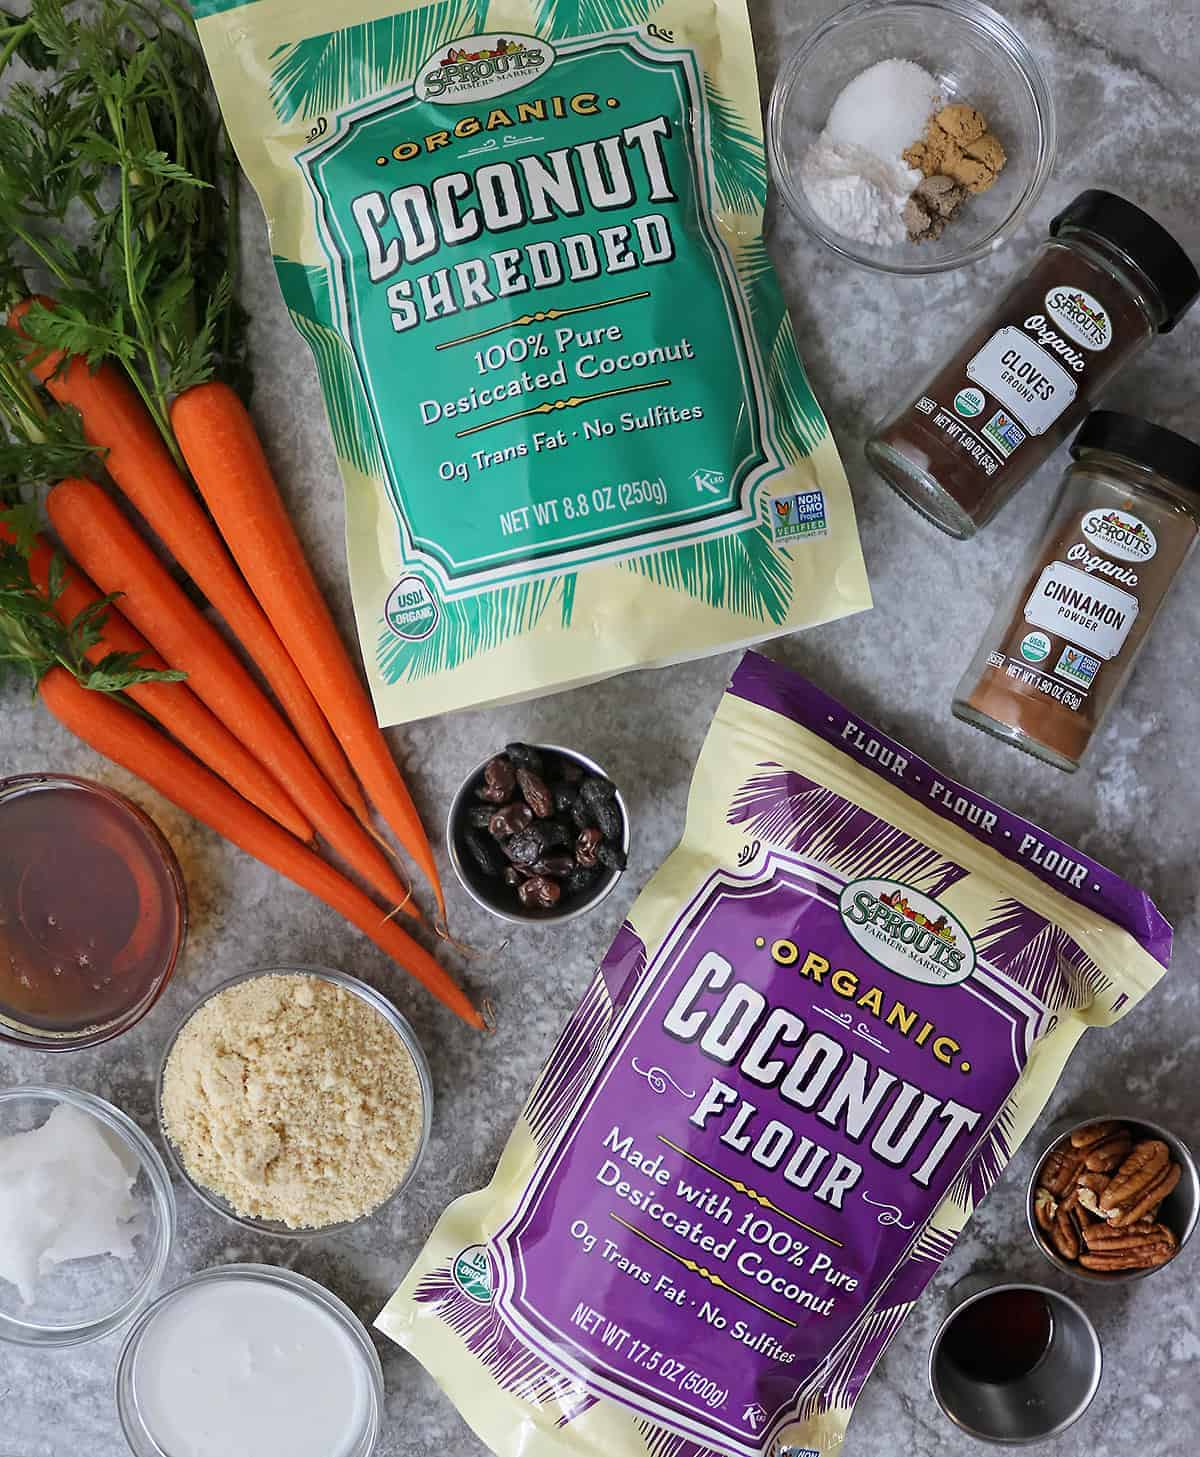 Ingredients from Sprouts to make paleo carrot cake bars